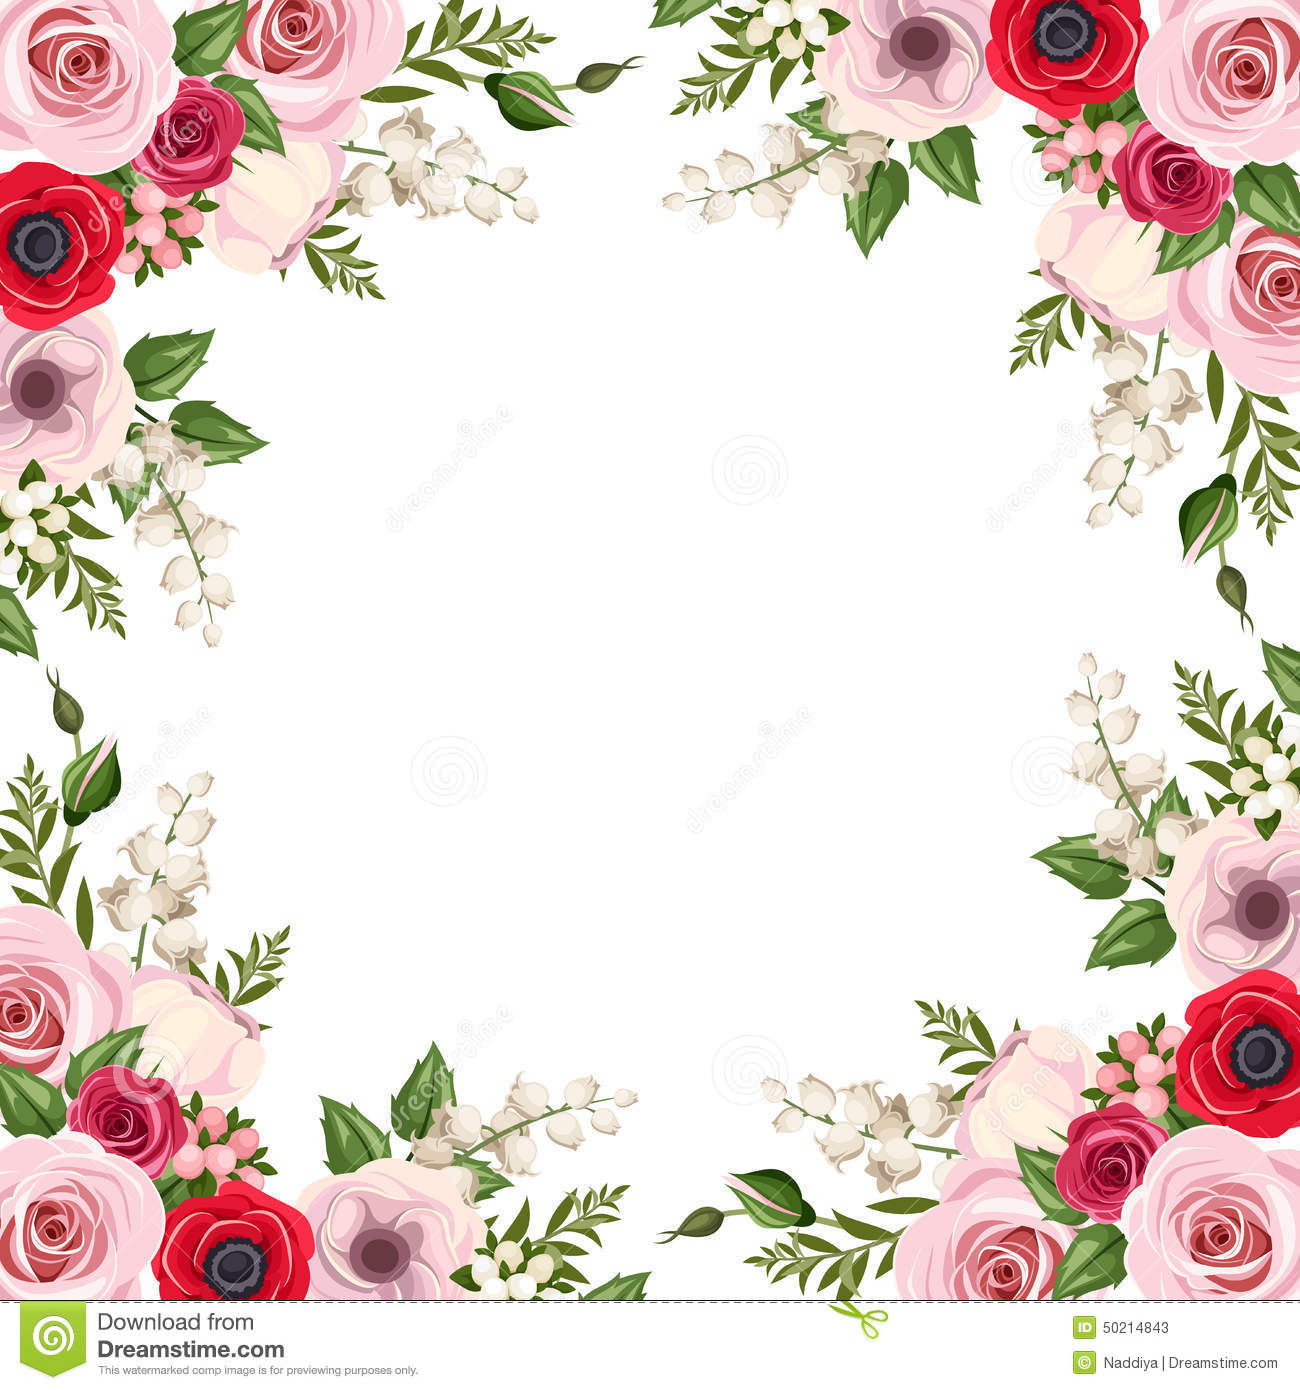 Frame with red and pink roses, lisianthus and anemone flowers and lily of the valley. Vector.